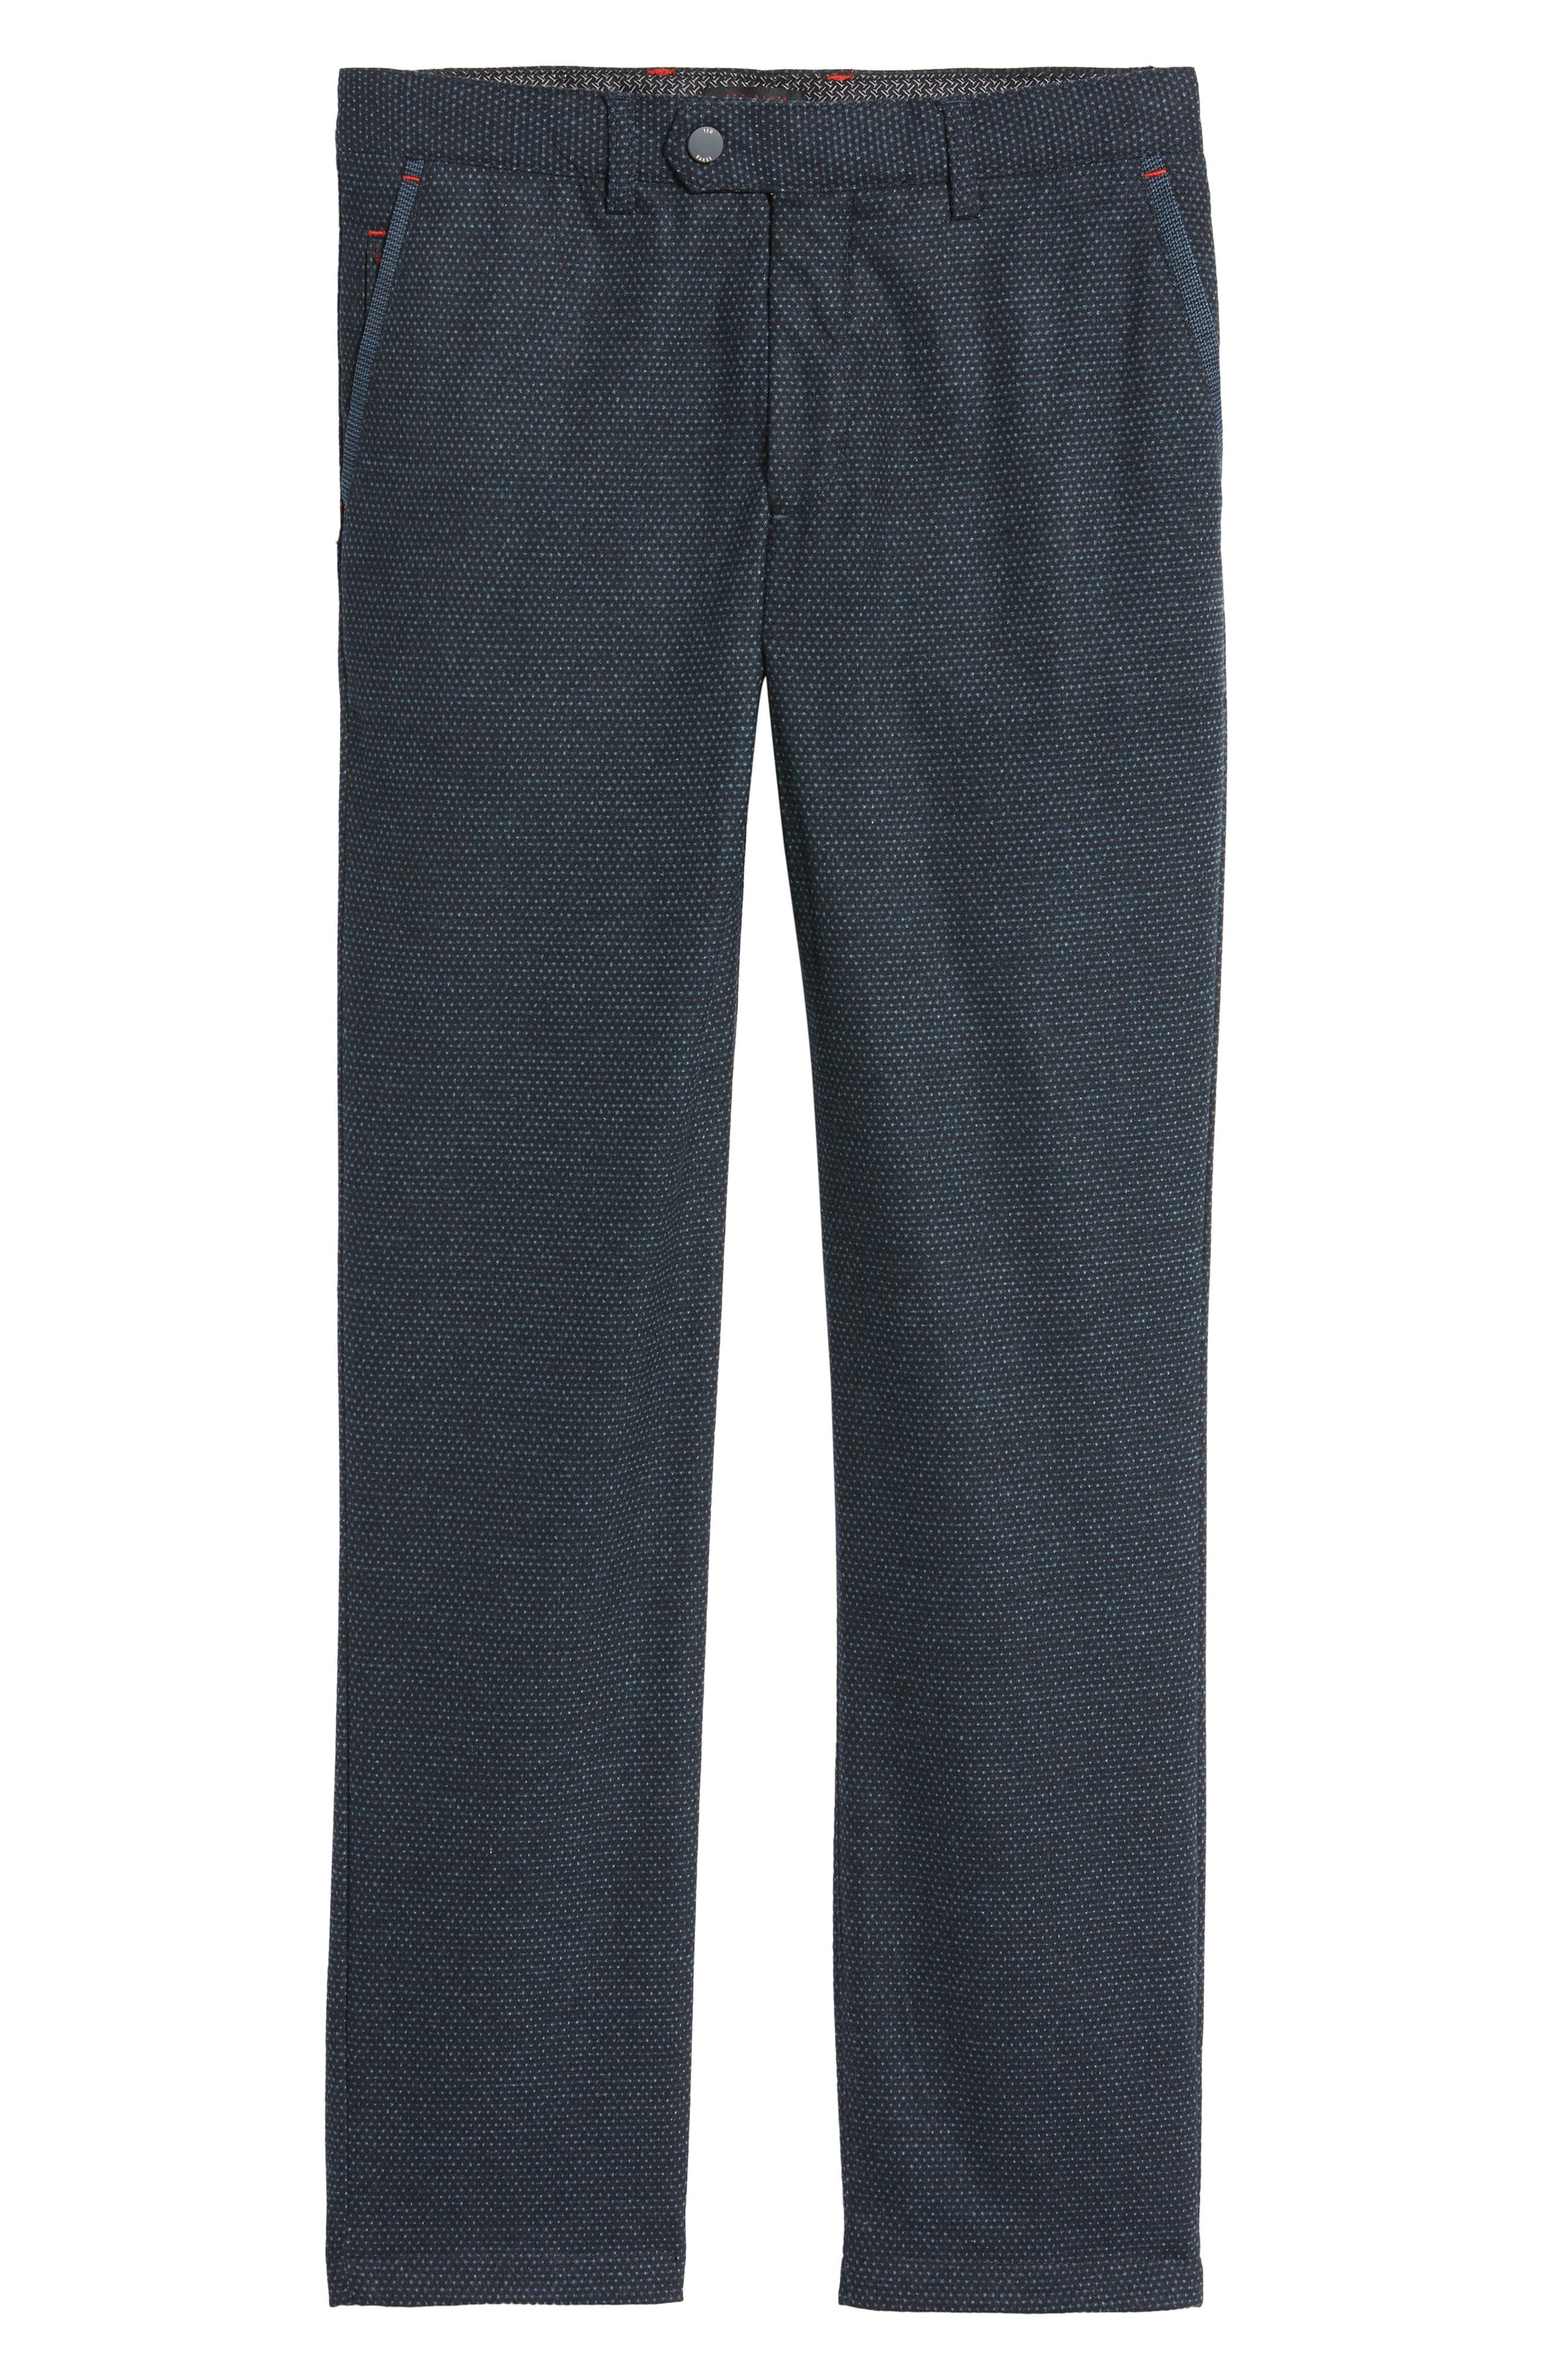 Water Resistant Golf Trousers,                             Alternate thumbnail 5, color,                             Navy